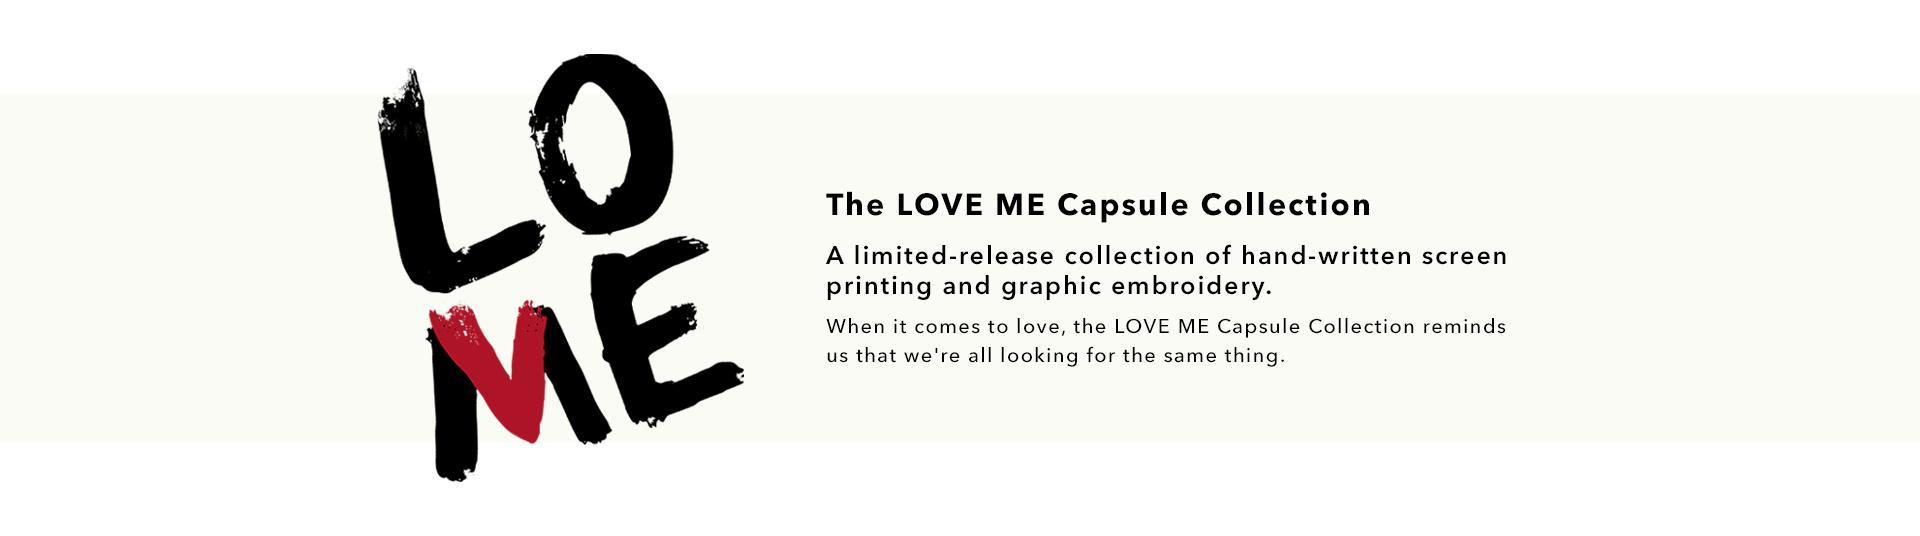 The LOVE ME Capsule Collection